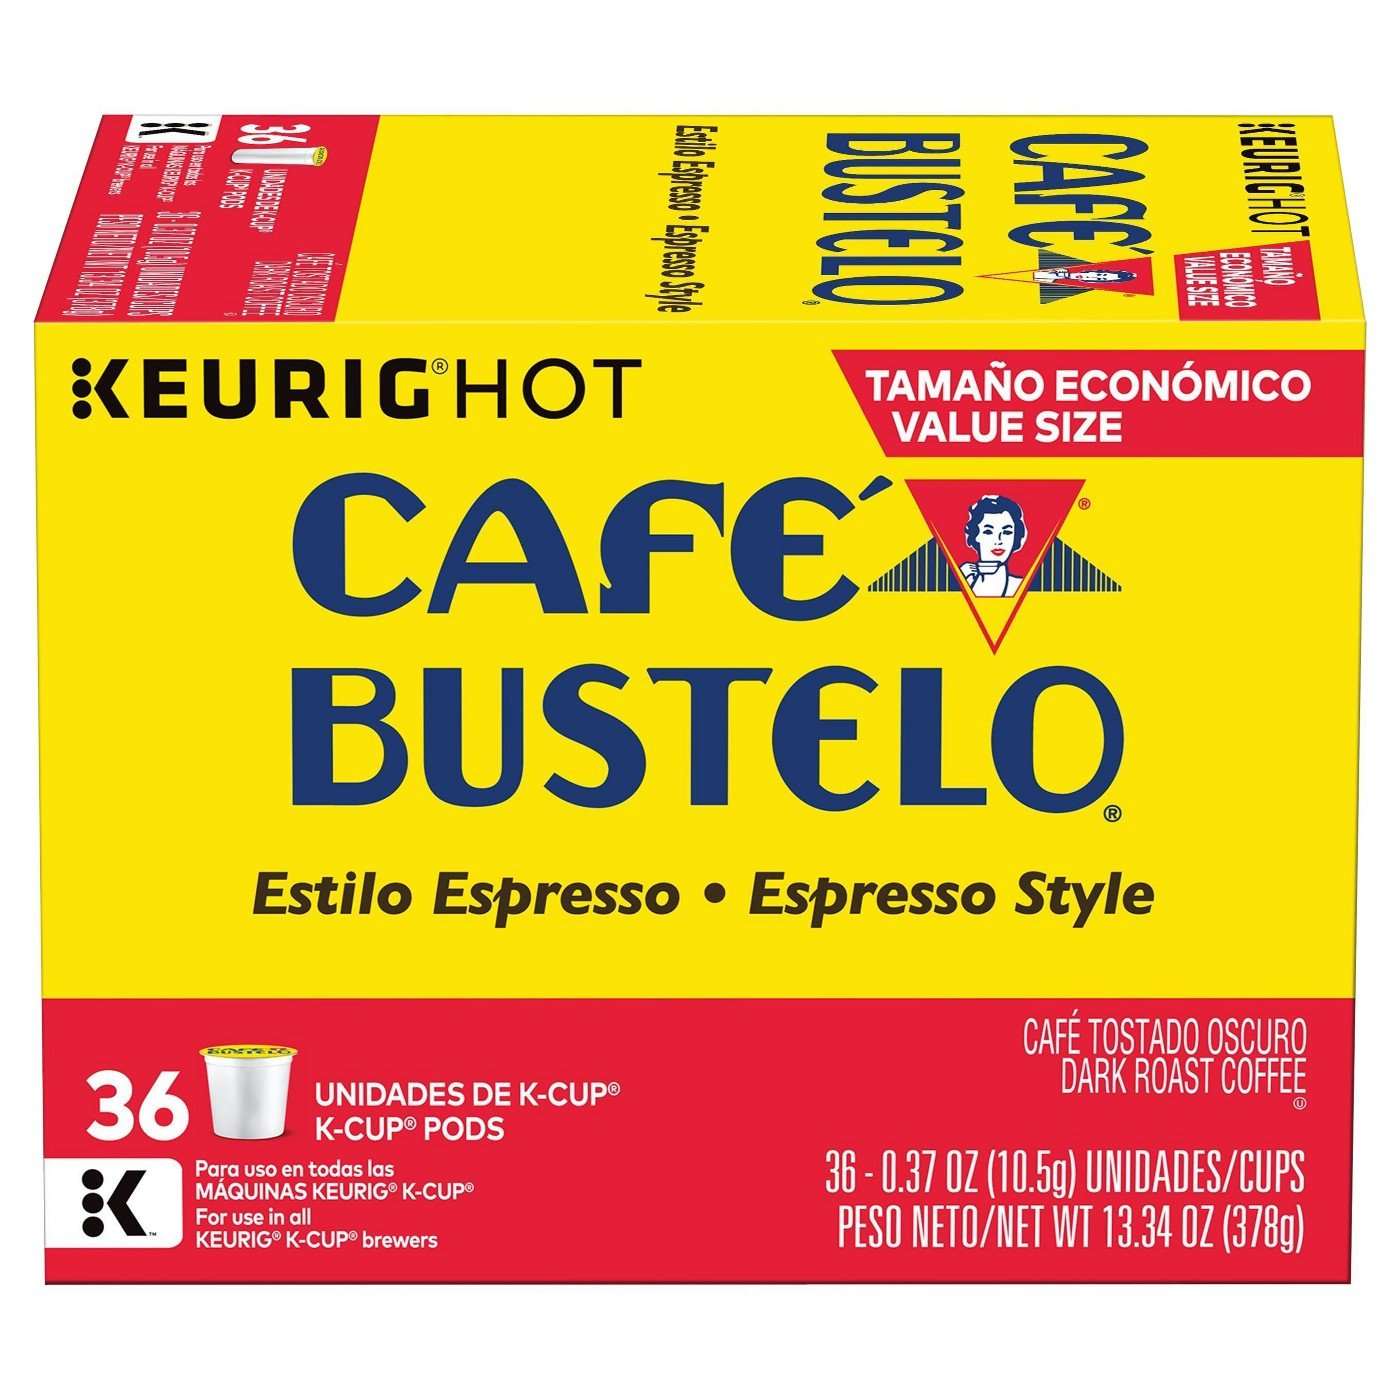 Cafe Bustelo Espresso Coffee k-cups - 36 ct: Amazon.com: Grocery & Gourmet Food